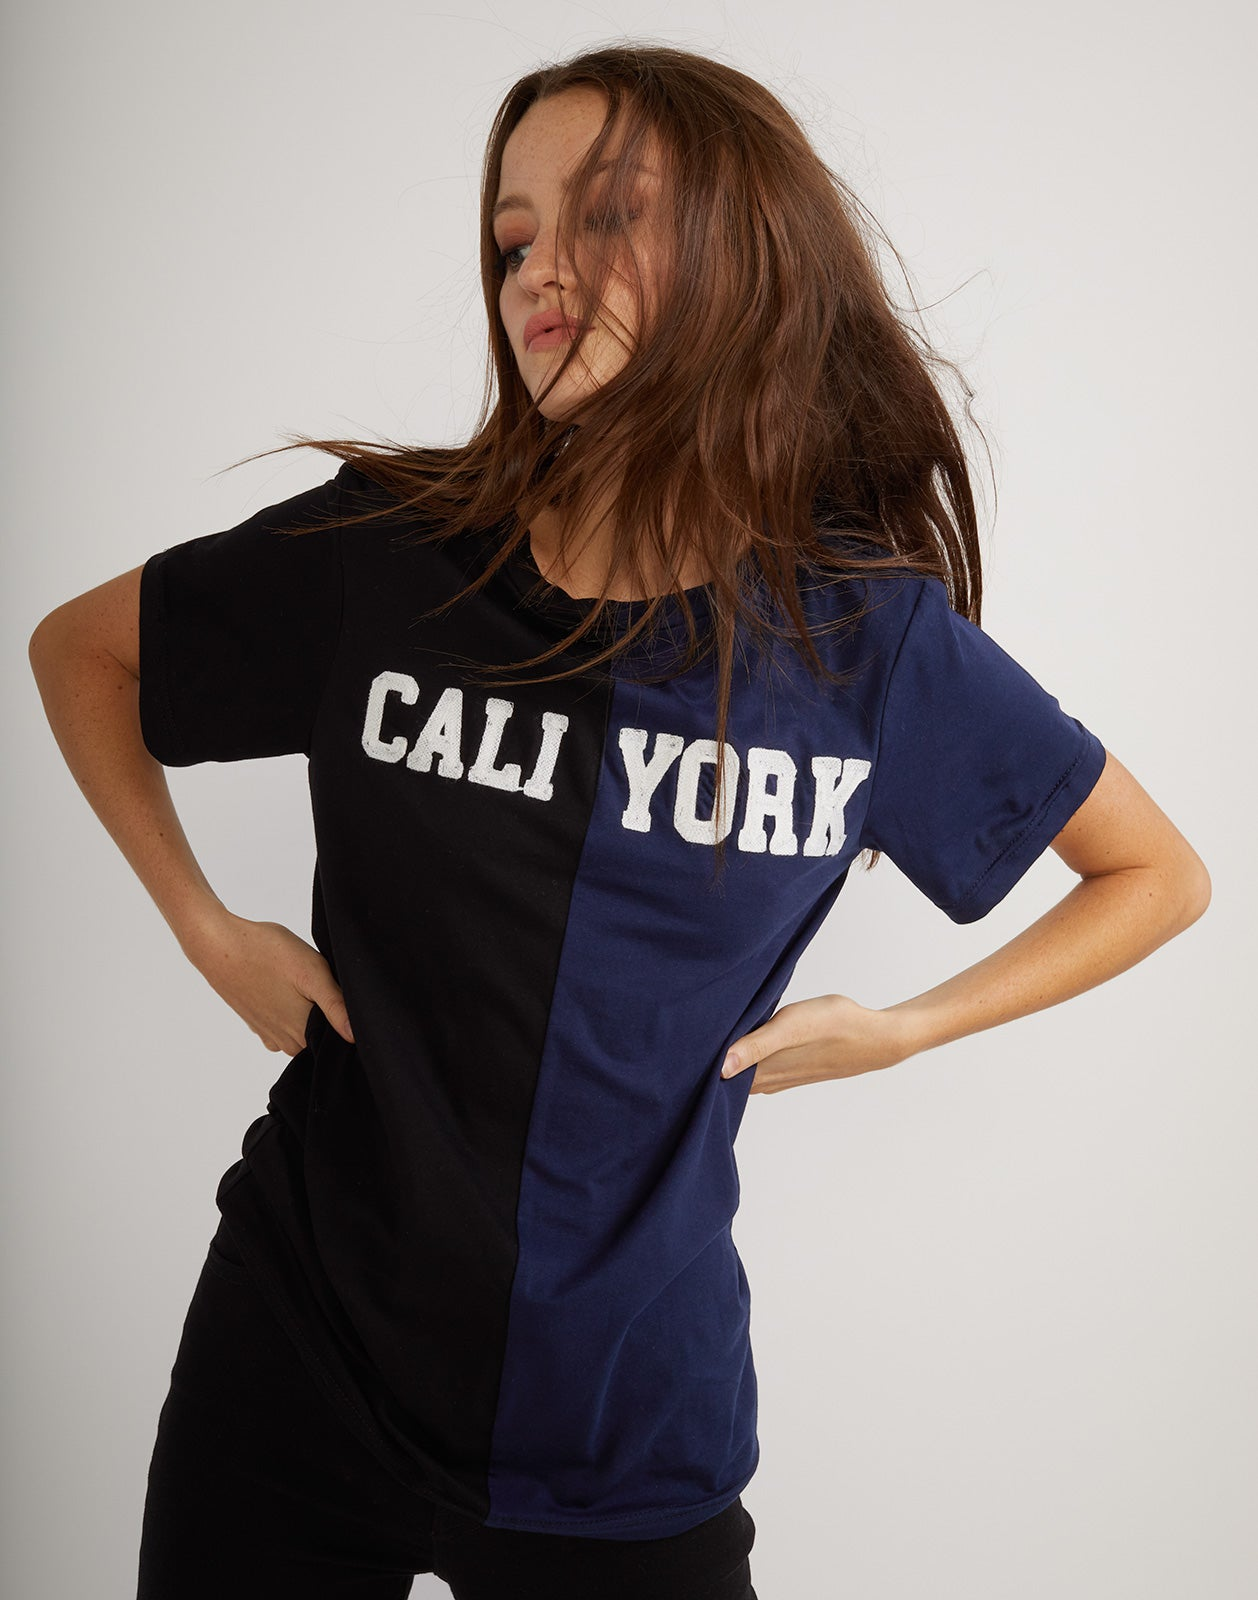 Front detail view of the short sleeved half black, half navy caliyork tee in soft cotton.